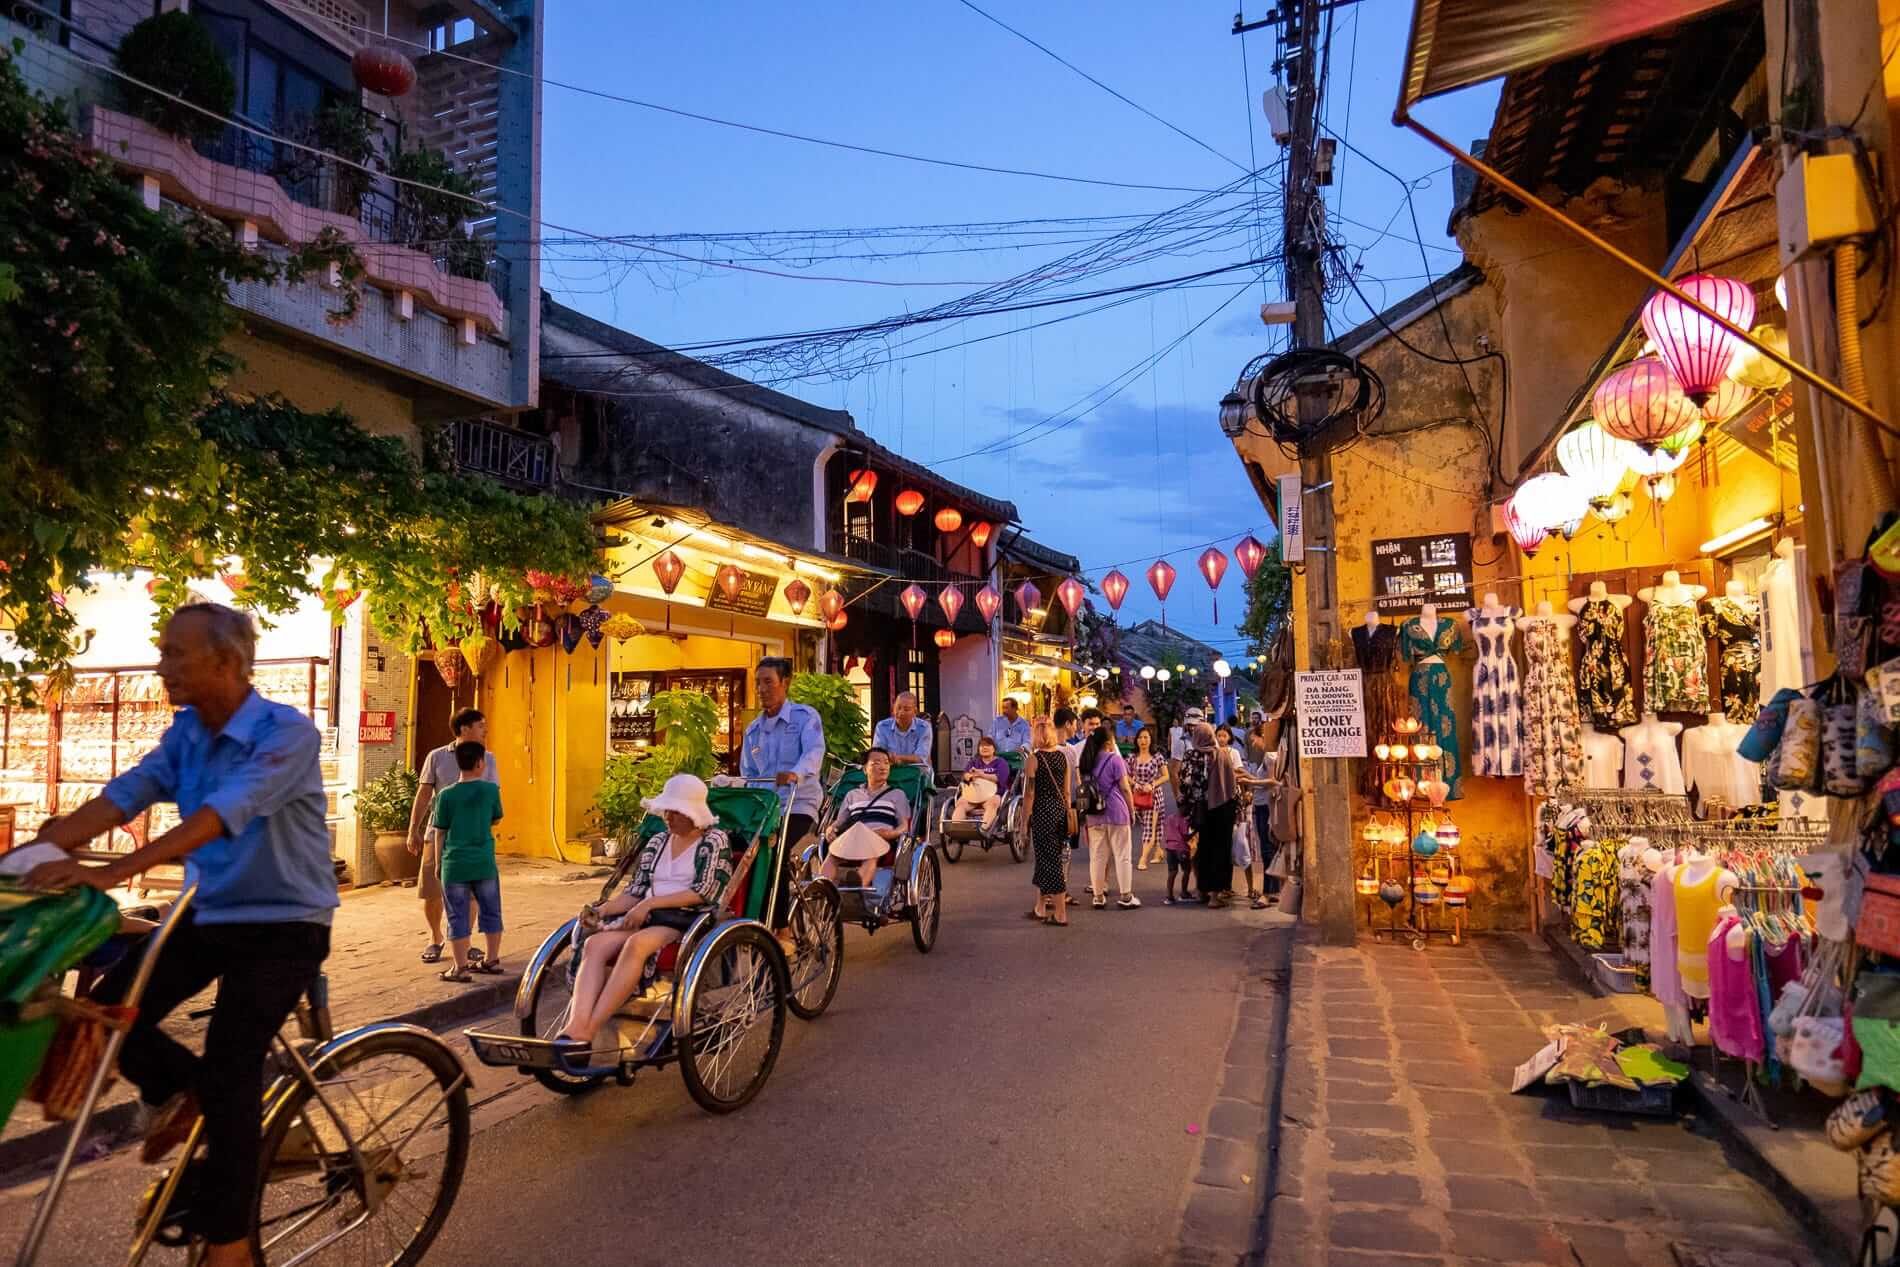 Cyclos with tourists - Hoi An Ancient Town